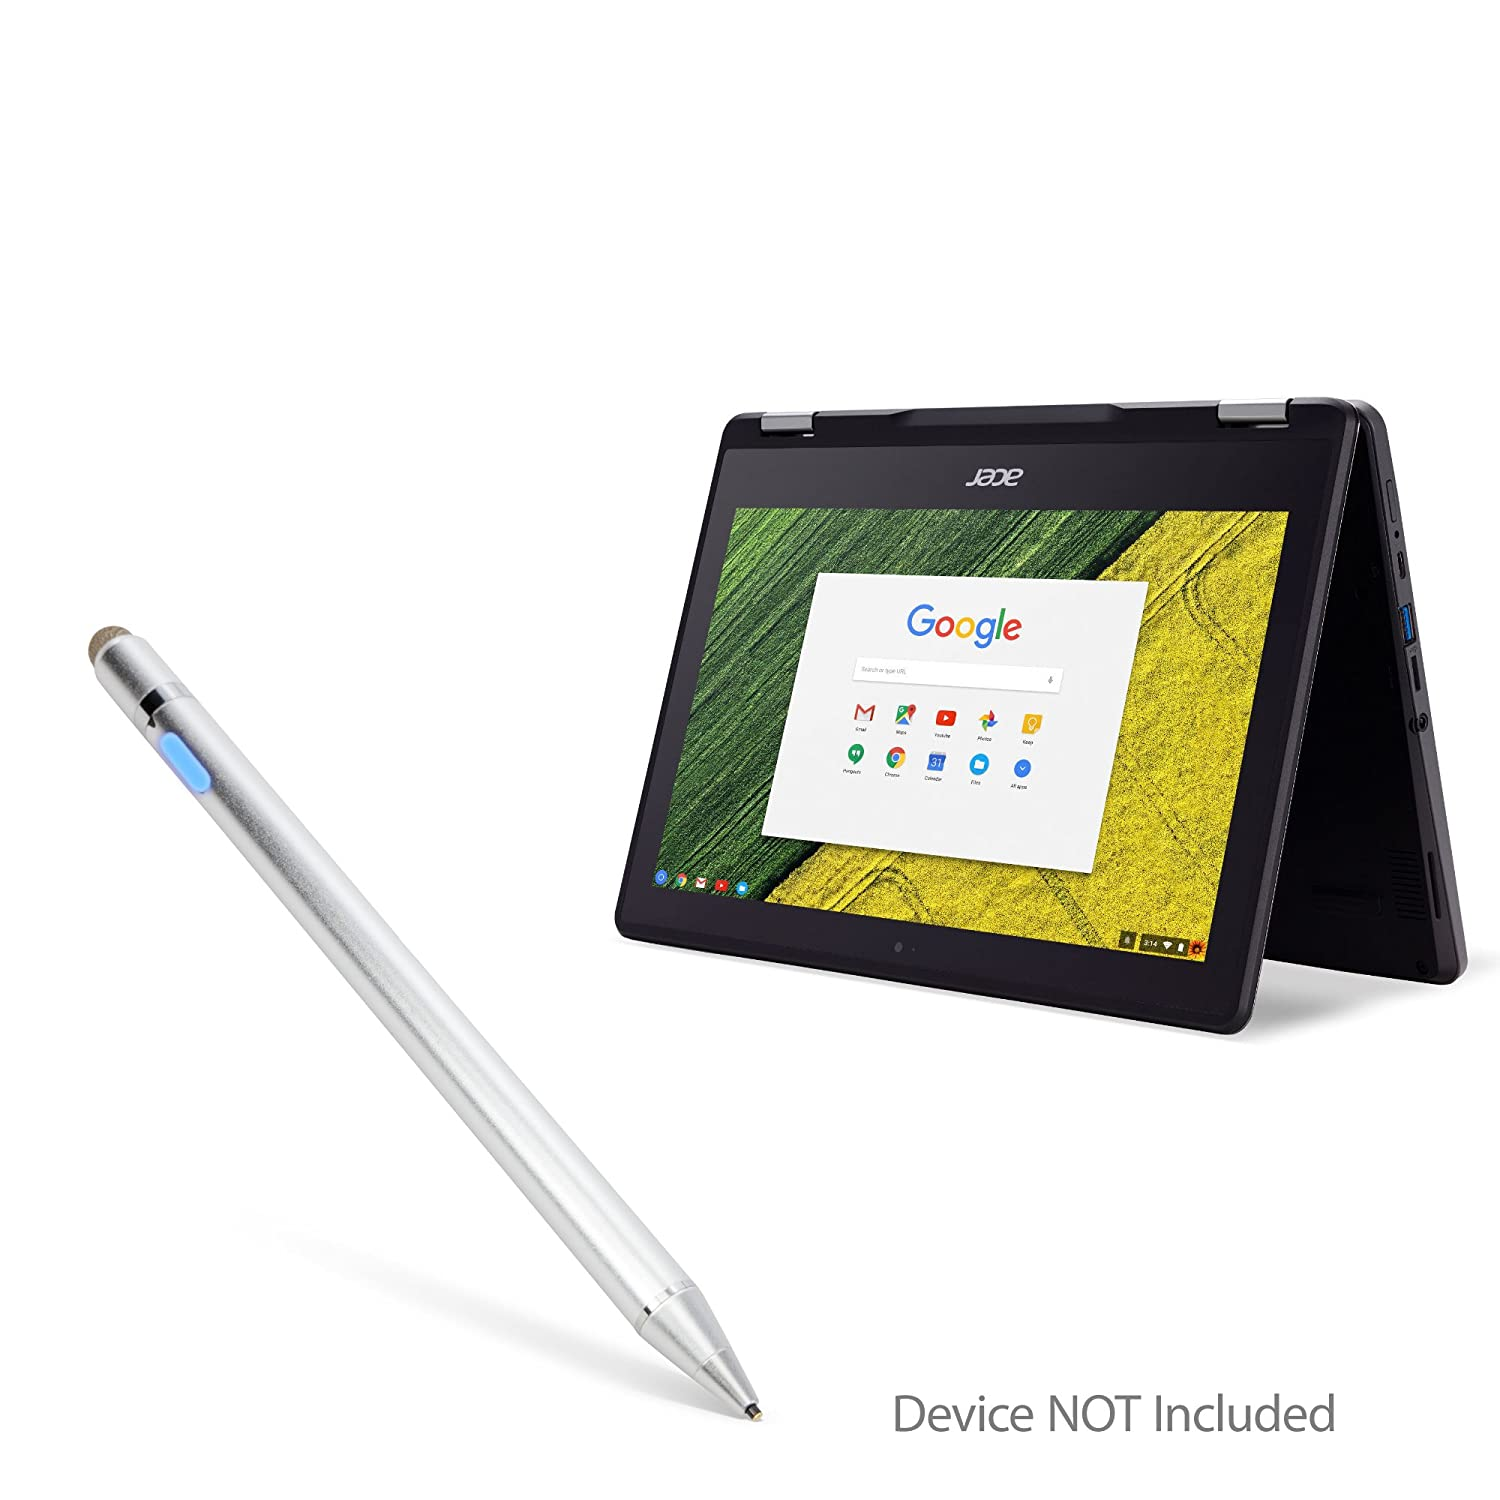 Acer Chromebook Spin 11 (R751T) Stylus Pen, BoxWave® [AccuPoint Active Stylus] Electronic Stylus with Ultra Fine Tip for Acer Chromebook Spin 11 (R751T) - Metallic Silver BoxWave Corporation bw-1434-15868-10305